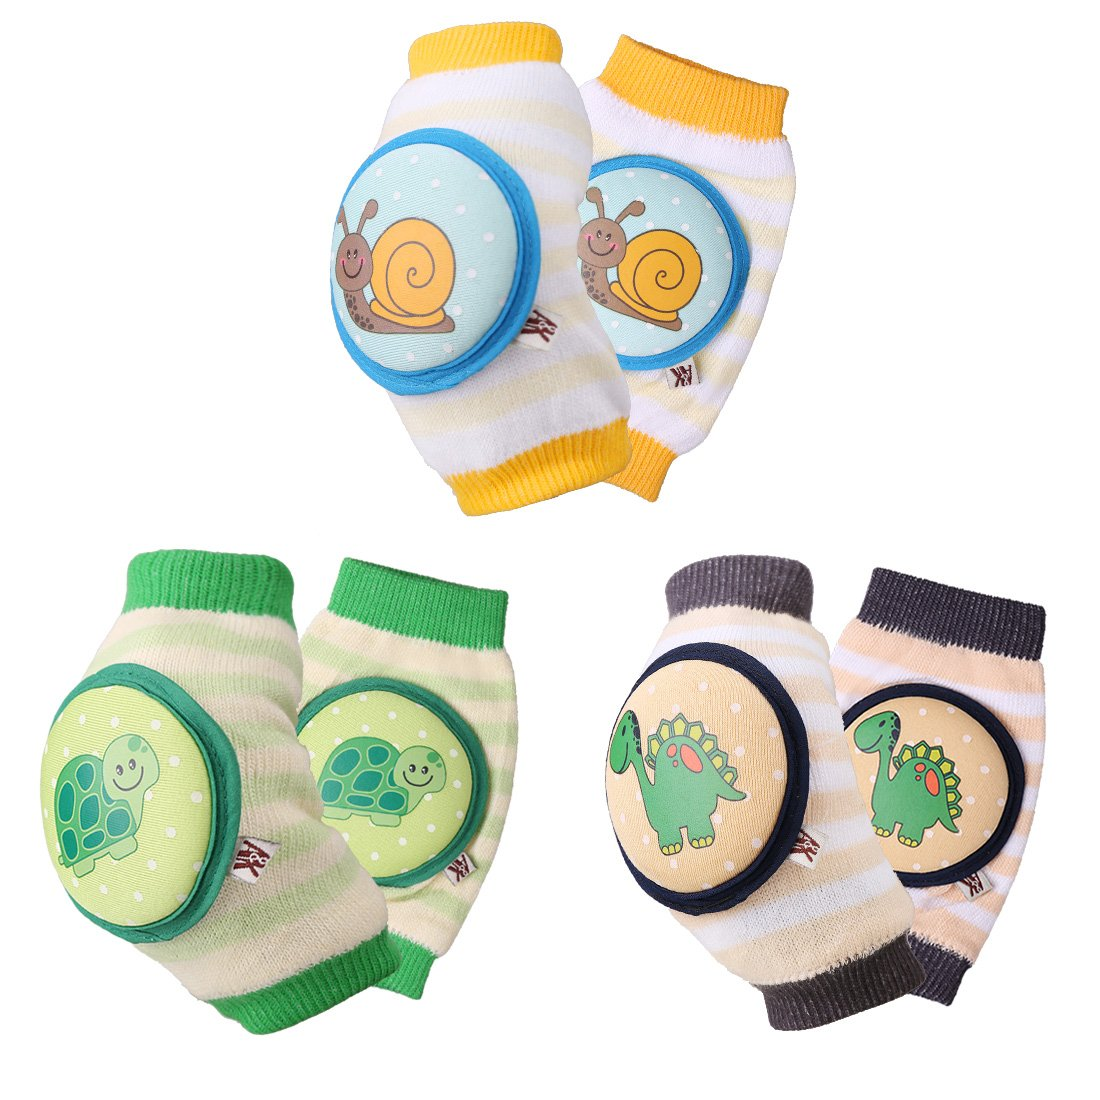 Top 9 Best Baby Knee Pads for Crawling Reviews in 2020 2